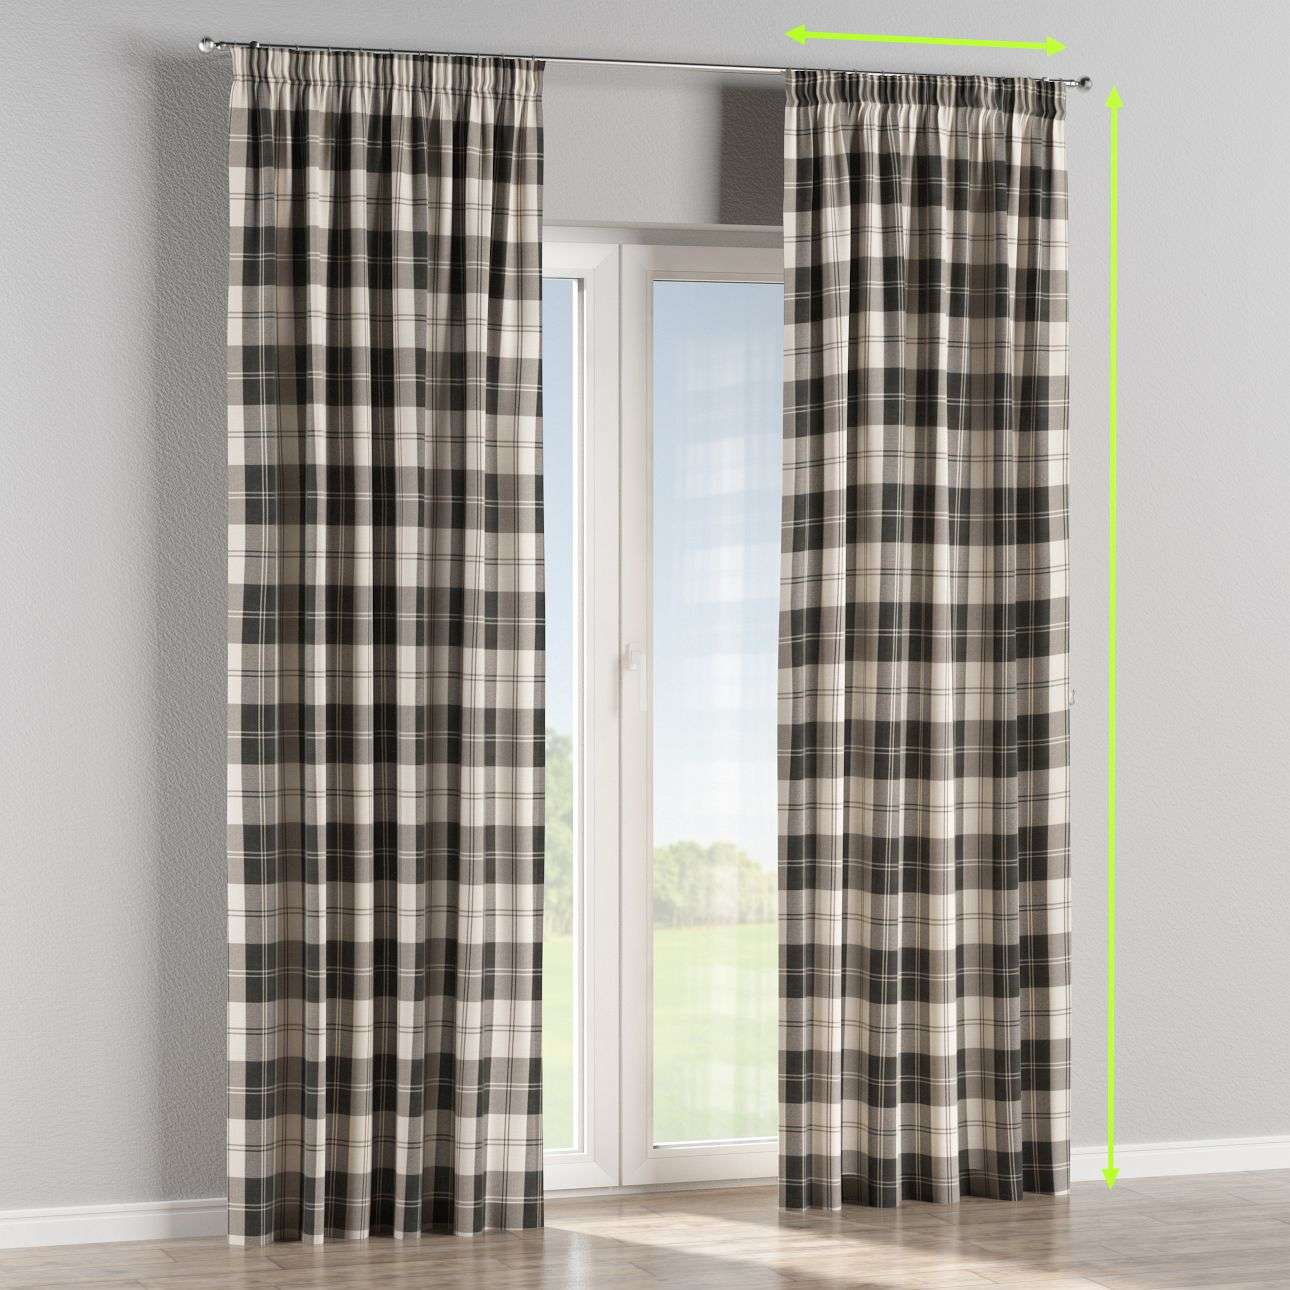 Pencil pleat lined curtains in collection Edinburgh , fabric: 115-74